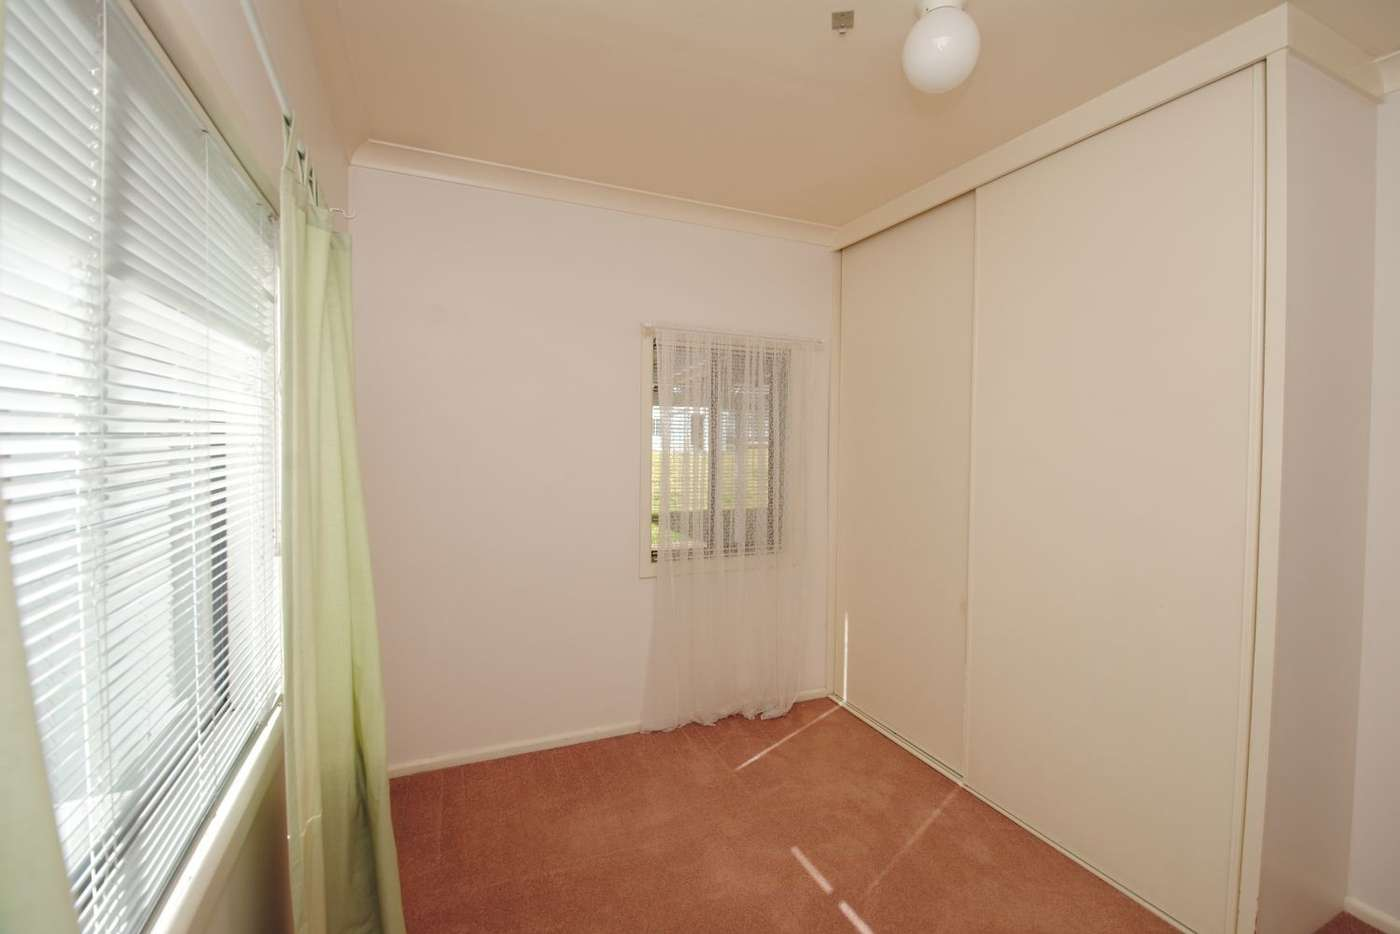 Sixth view of Homely house listing, 3 Andrew Street, Lithgow NSW 2790